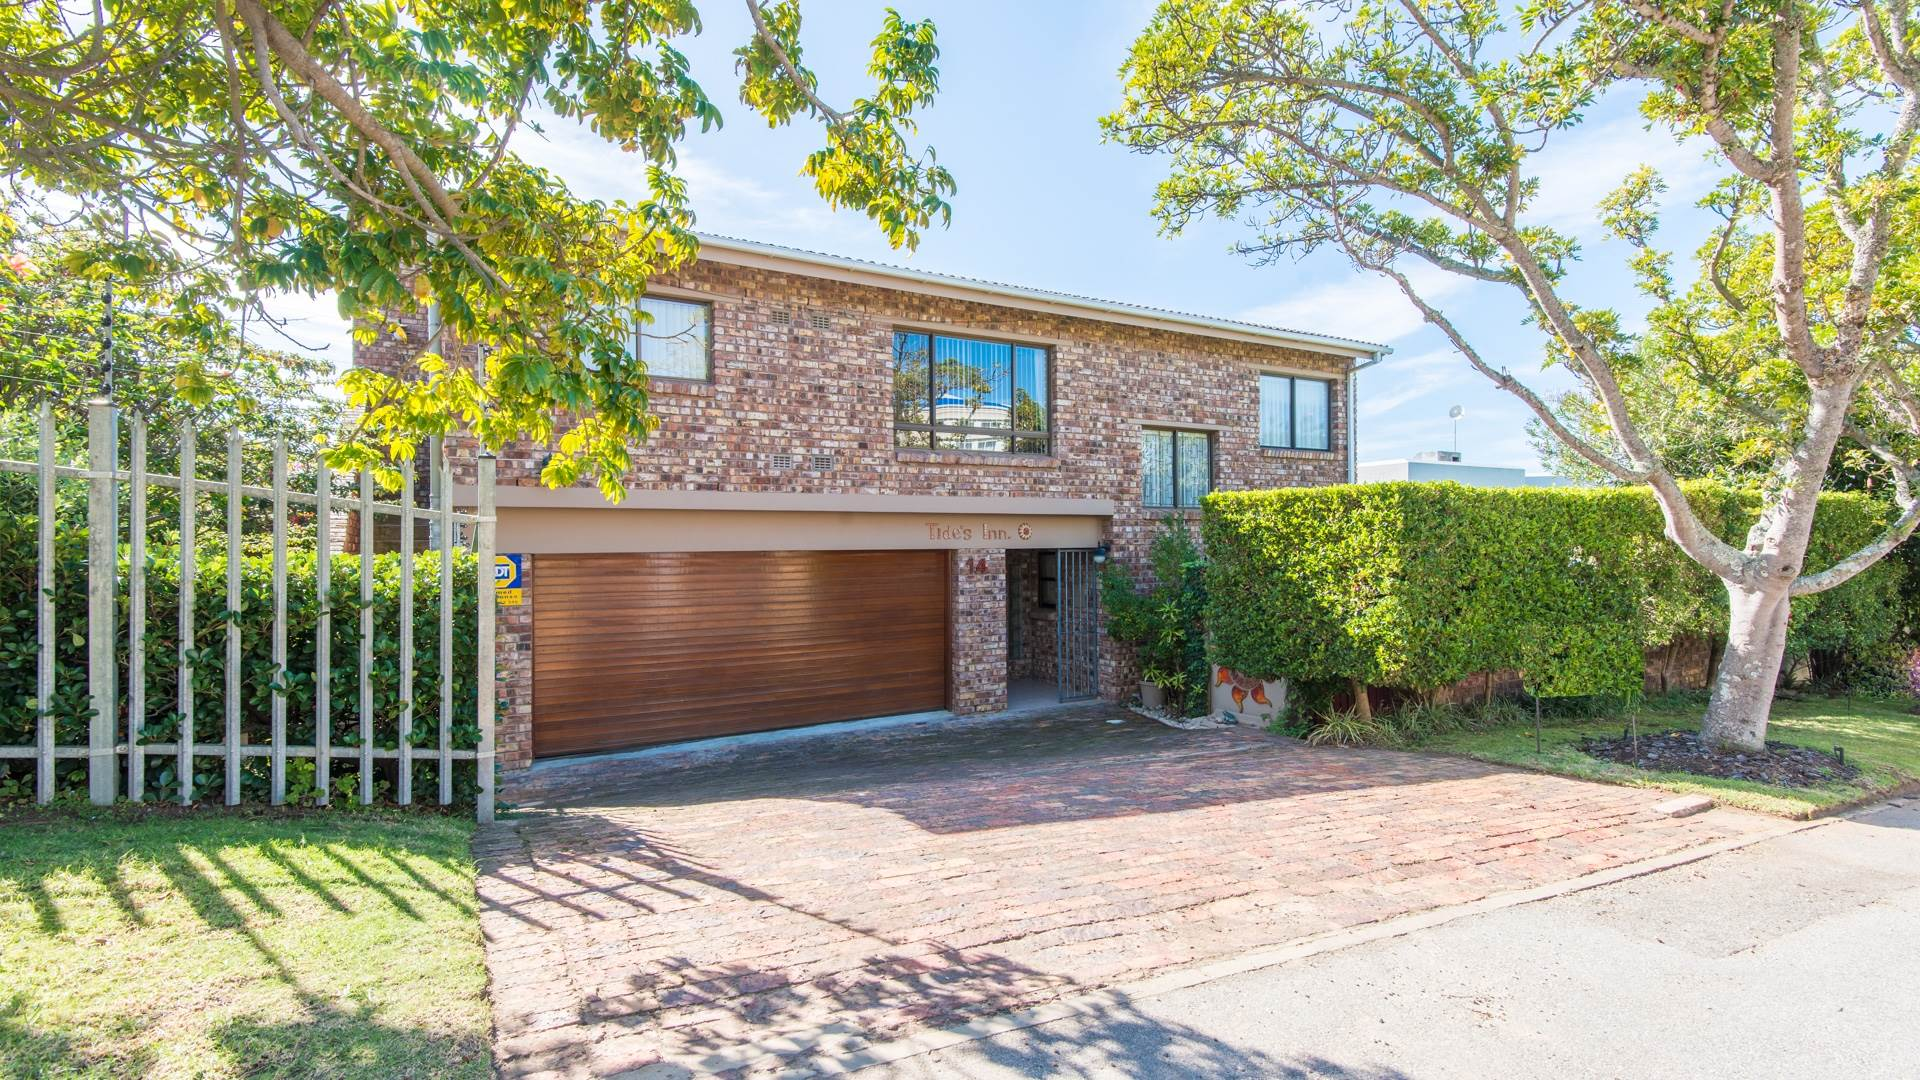 4 BedroomHouse For Sale In Hill View